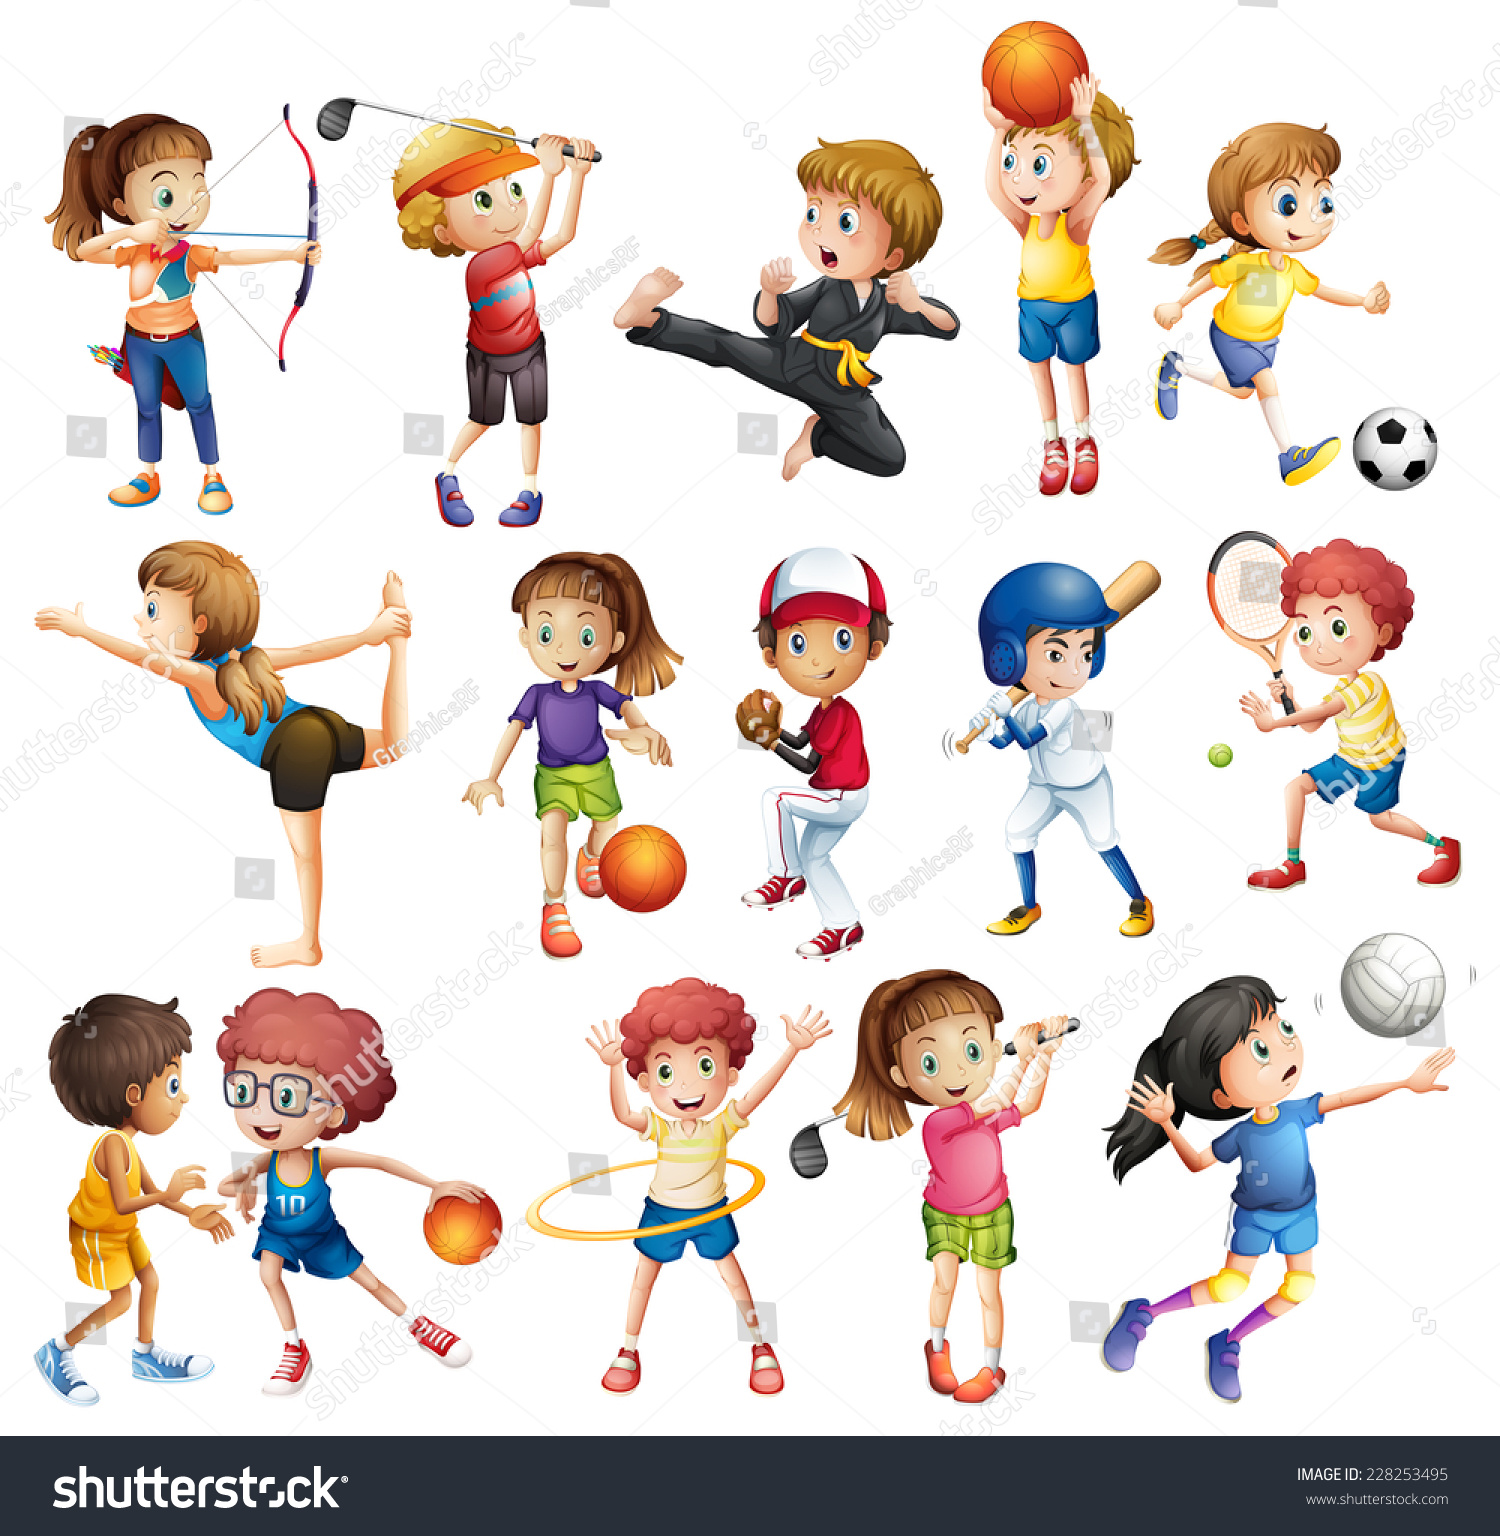 Gallery For gt Cartoon Kid Playing Sports